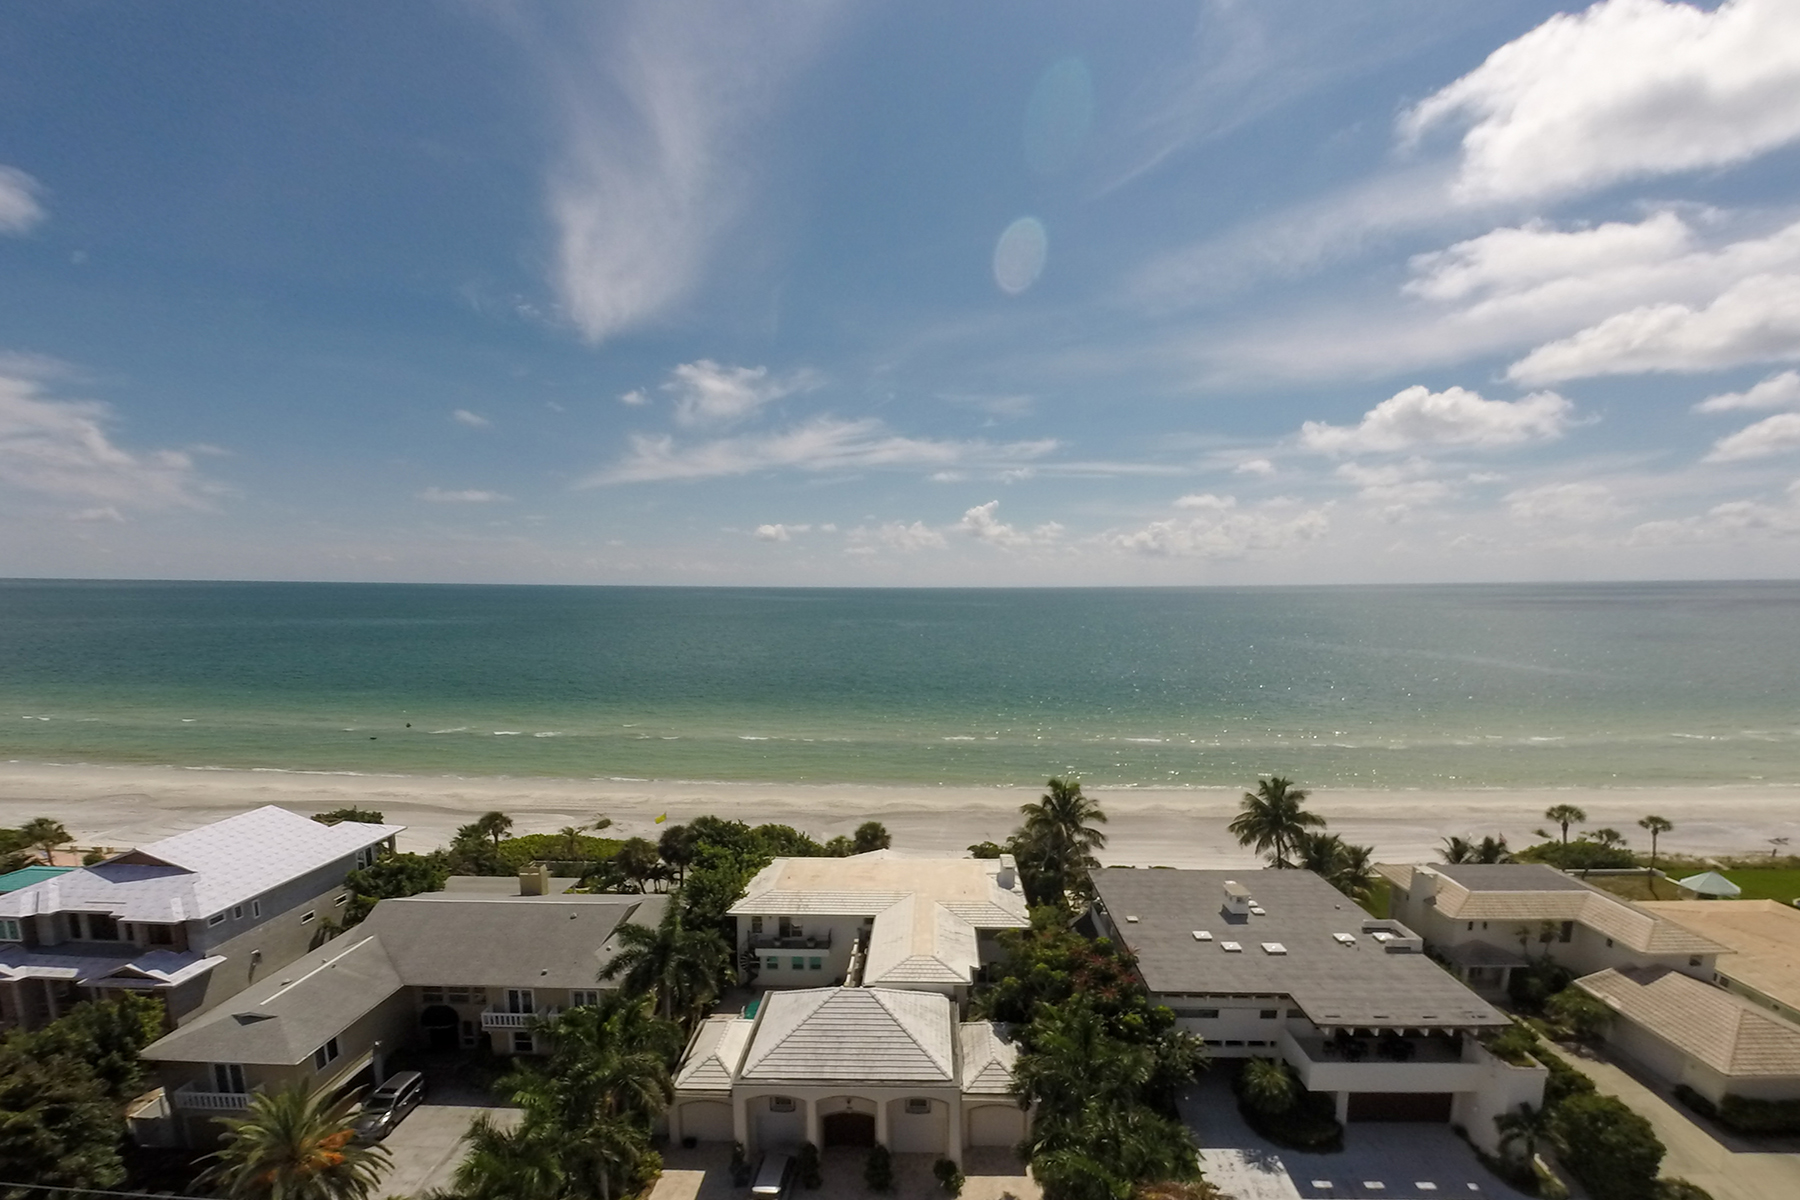 Single Family Home for Sale at REDINGTON BEACH 16248 Gulf Blvd Redington Beach, Florida 33708 United States